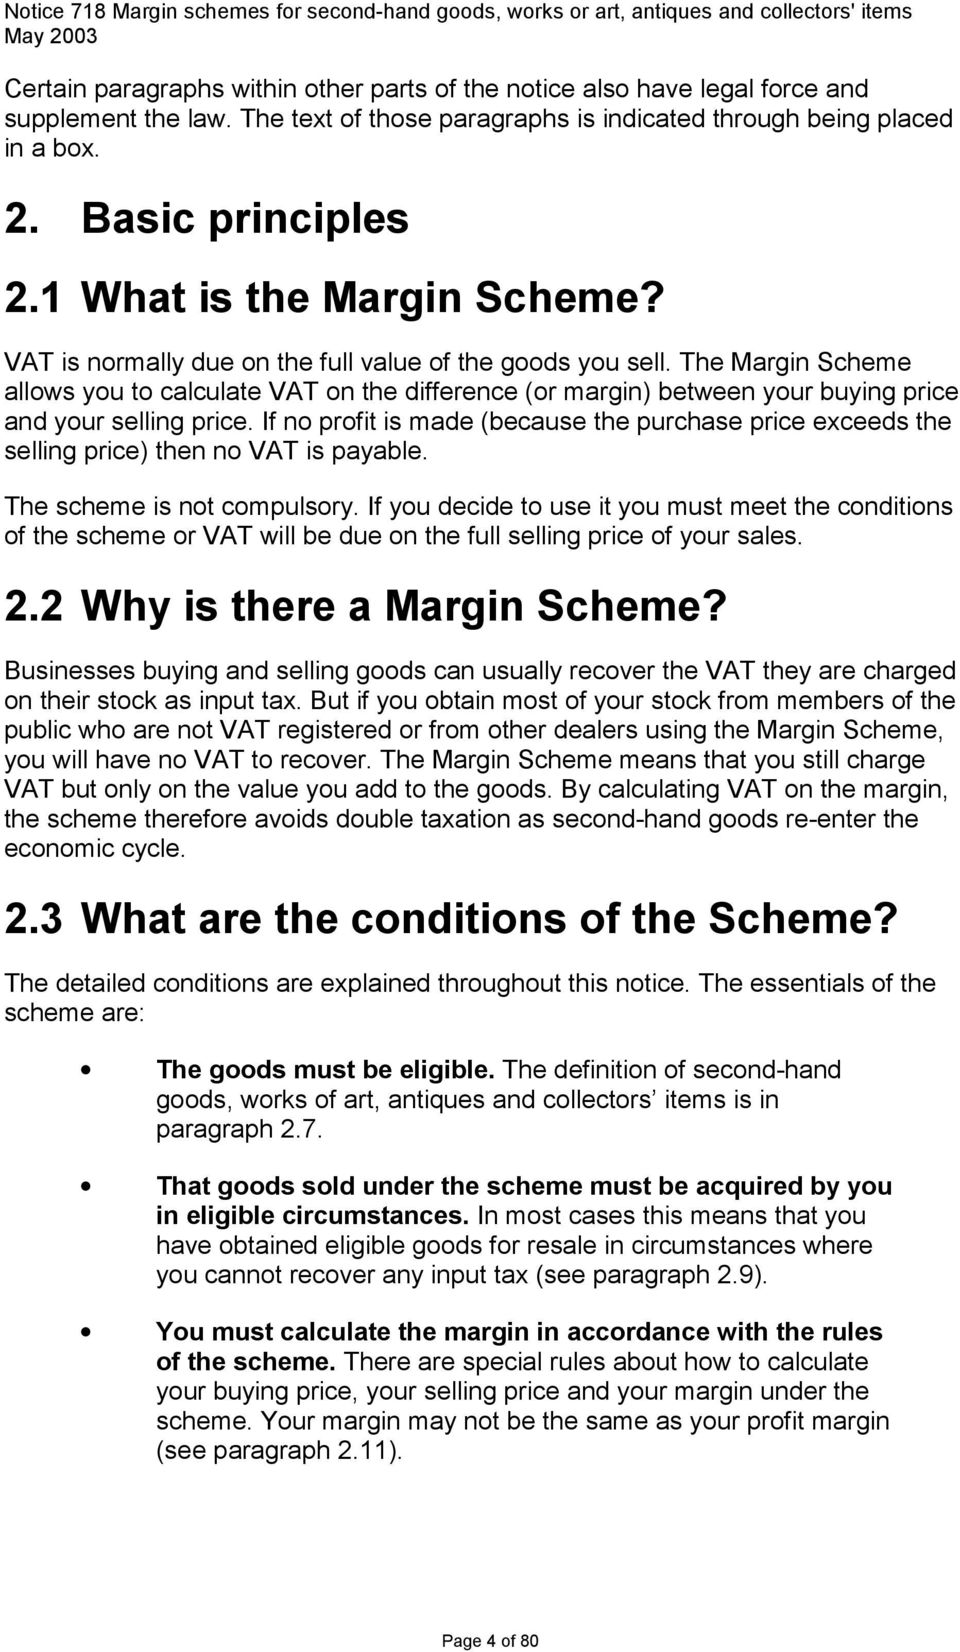 The Margin Scheme allows you to calculate VAT on the difference (or margin) between your buying price and your selling price.